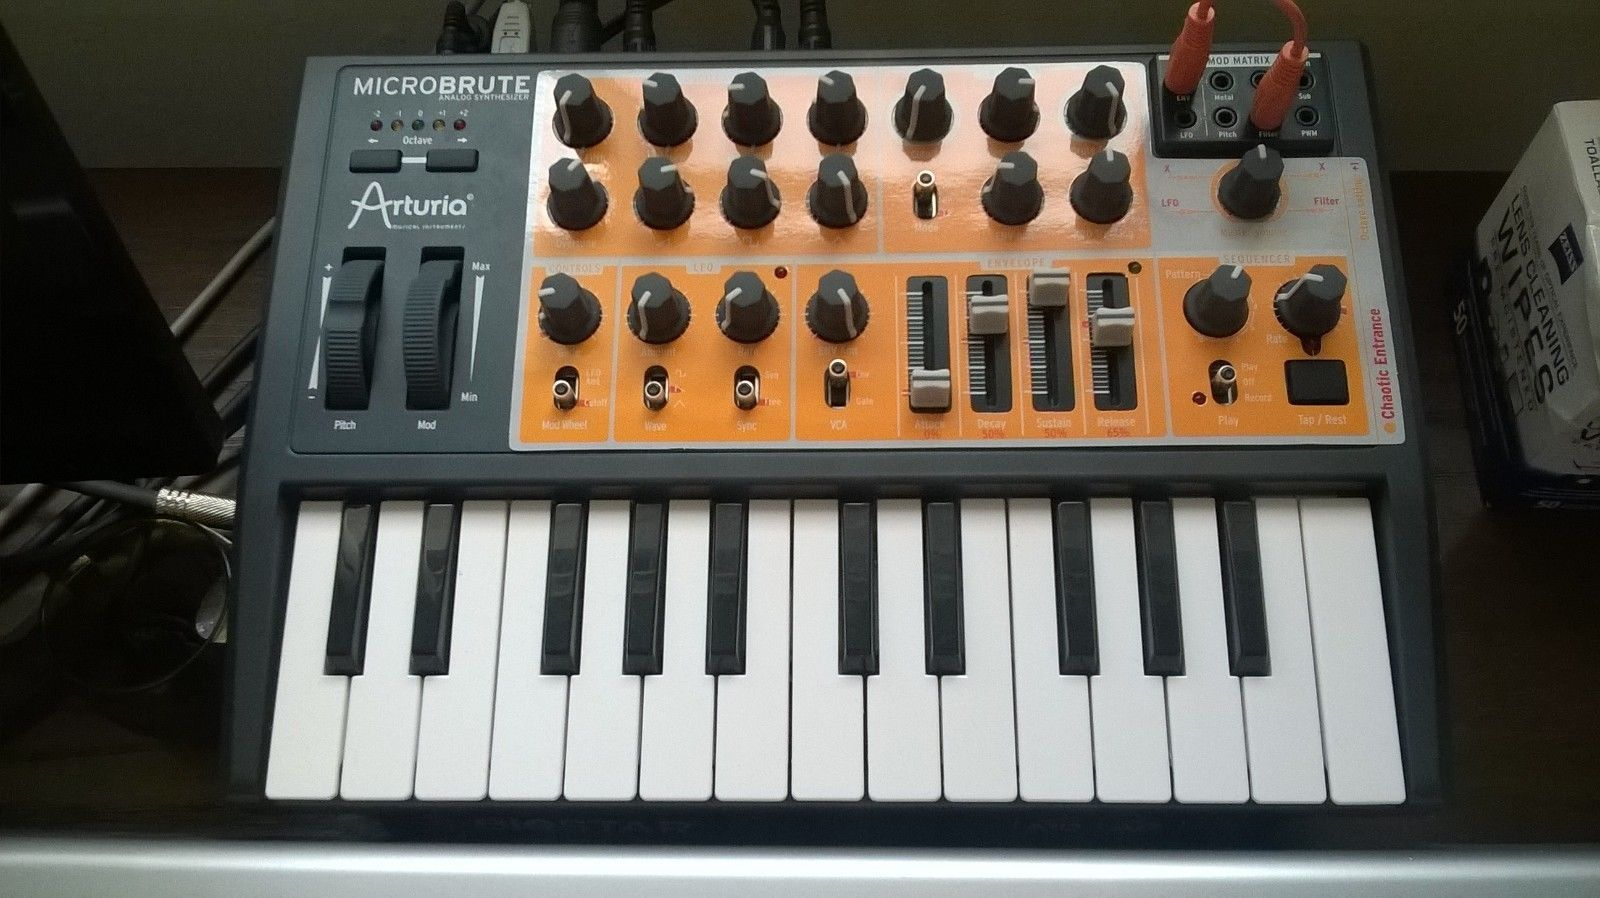 Matrixsynth Arturia Microbrute Synthesizer With Preset